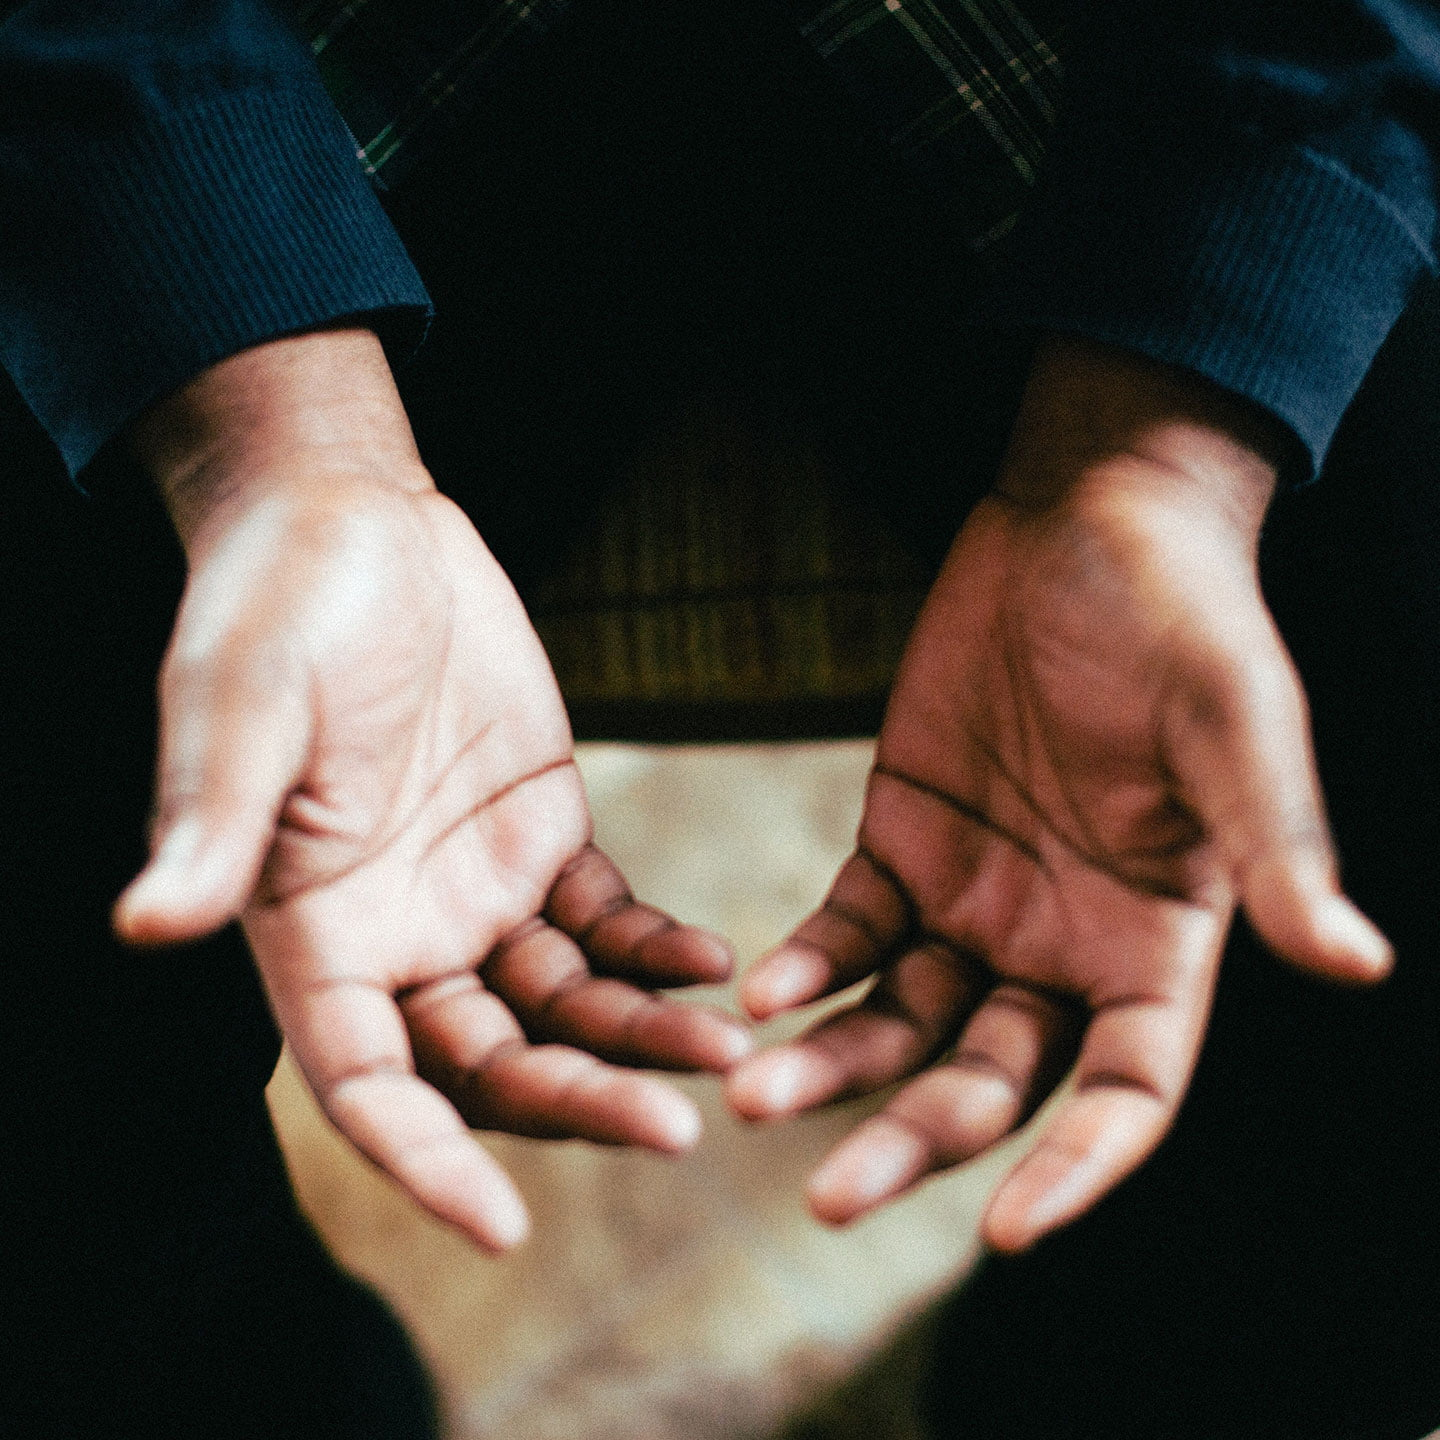 Photo of two open hands, palms up